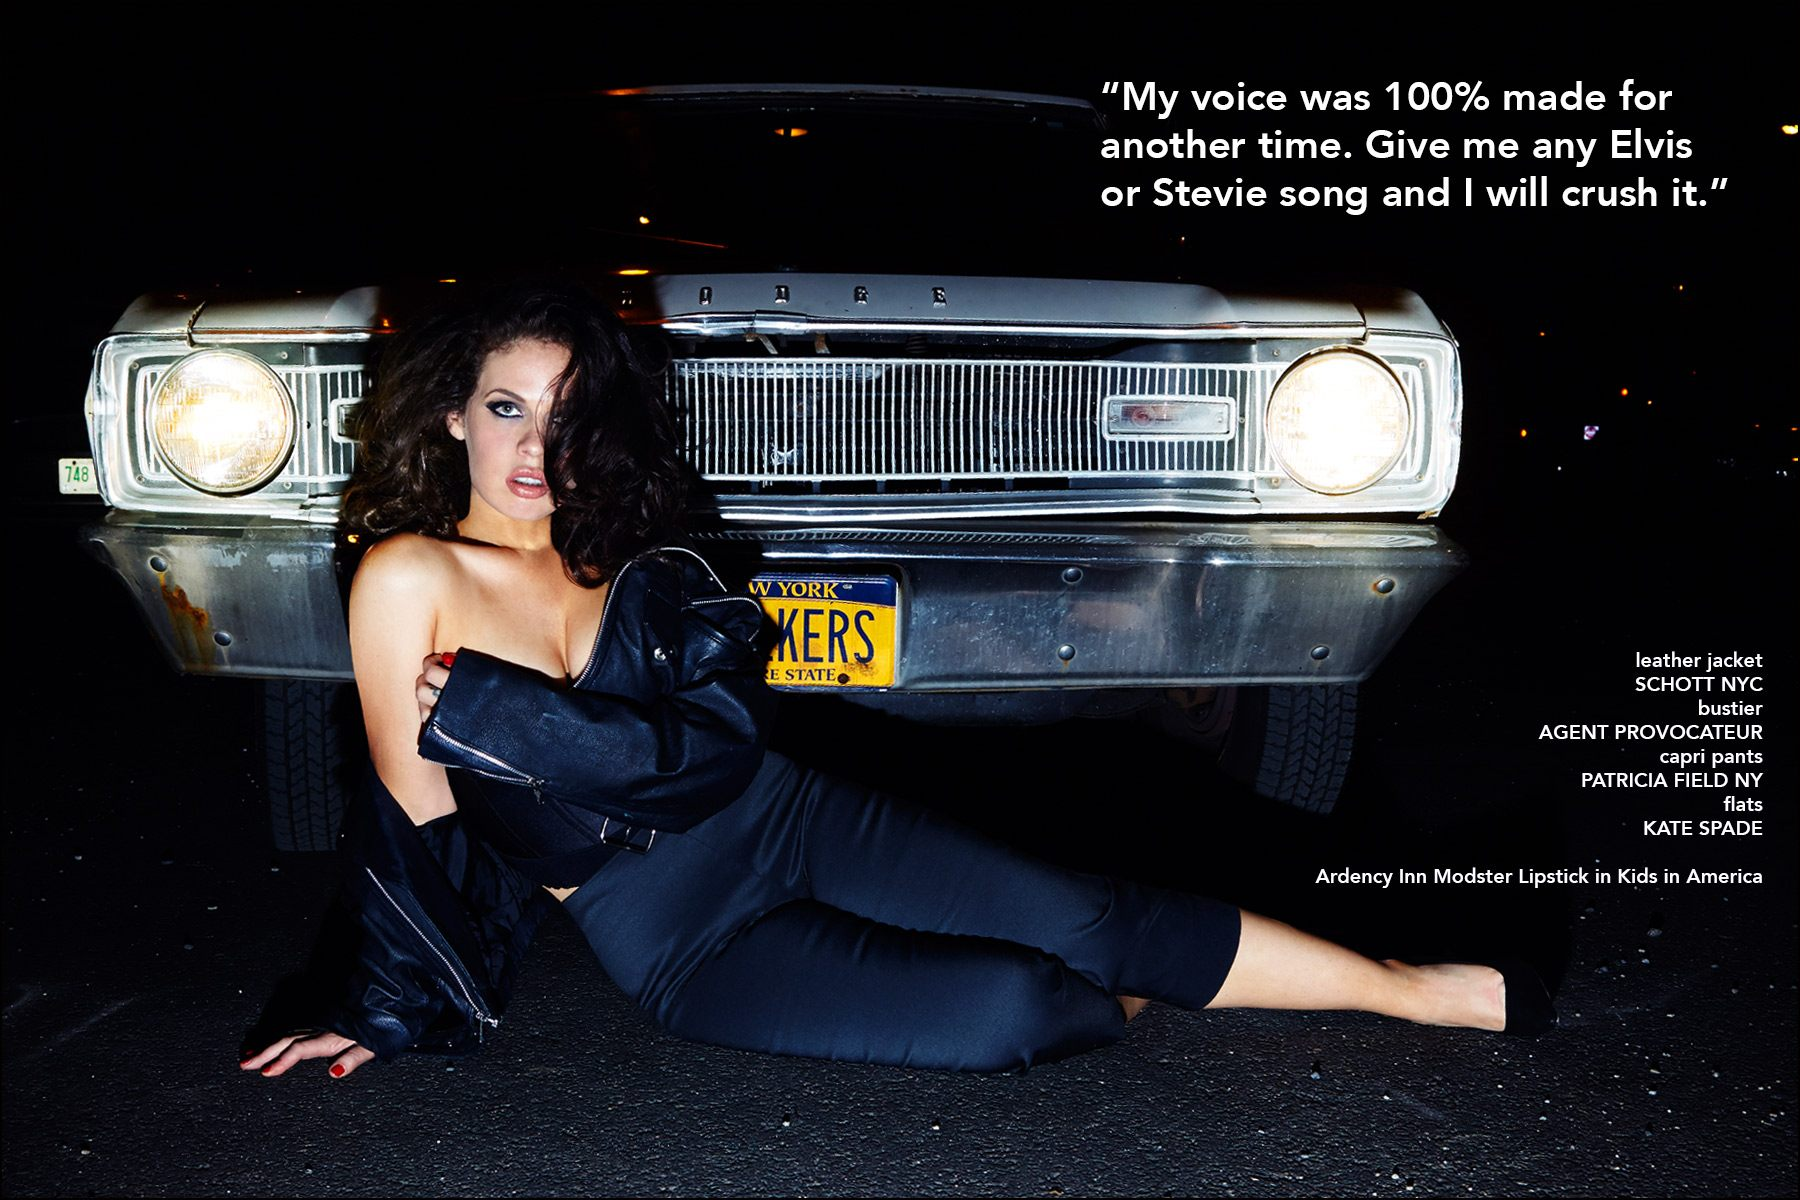 Kelsy Karter photographed in front of a Dodge Dart, wearing a leather jacket by Schott NYC, bustier by Agent Provocateur, capri pants by Patricia Field NY and flats by Kate Spade. Photography by Alexander Thompson for Ponyboy magazine NY.